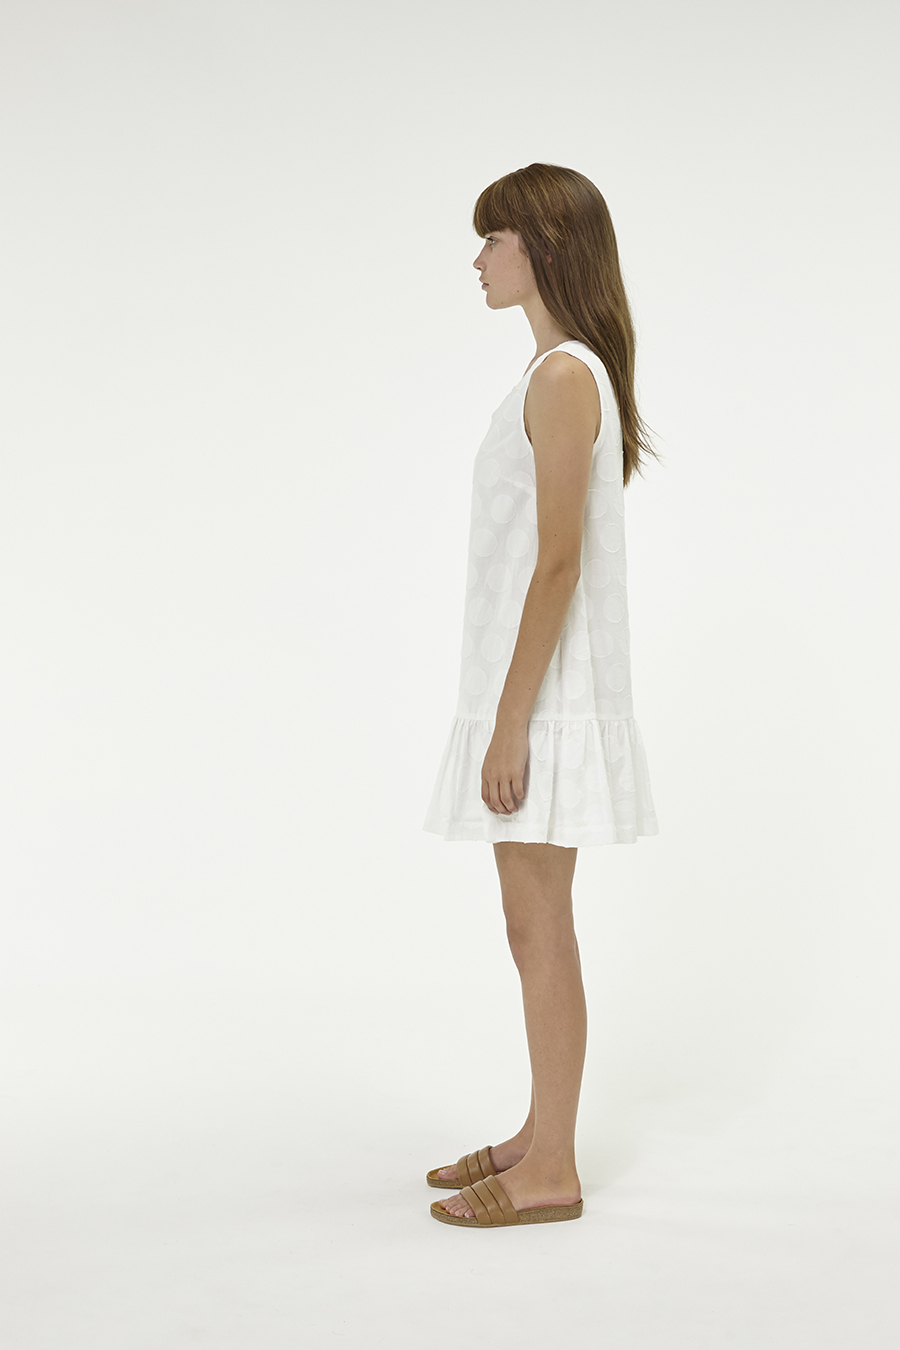 Huffer_Q3-16_W-Spot-Port-Dress_White-02